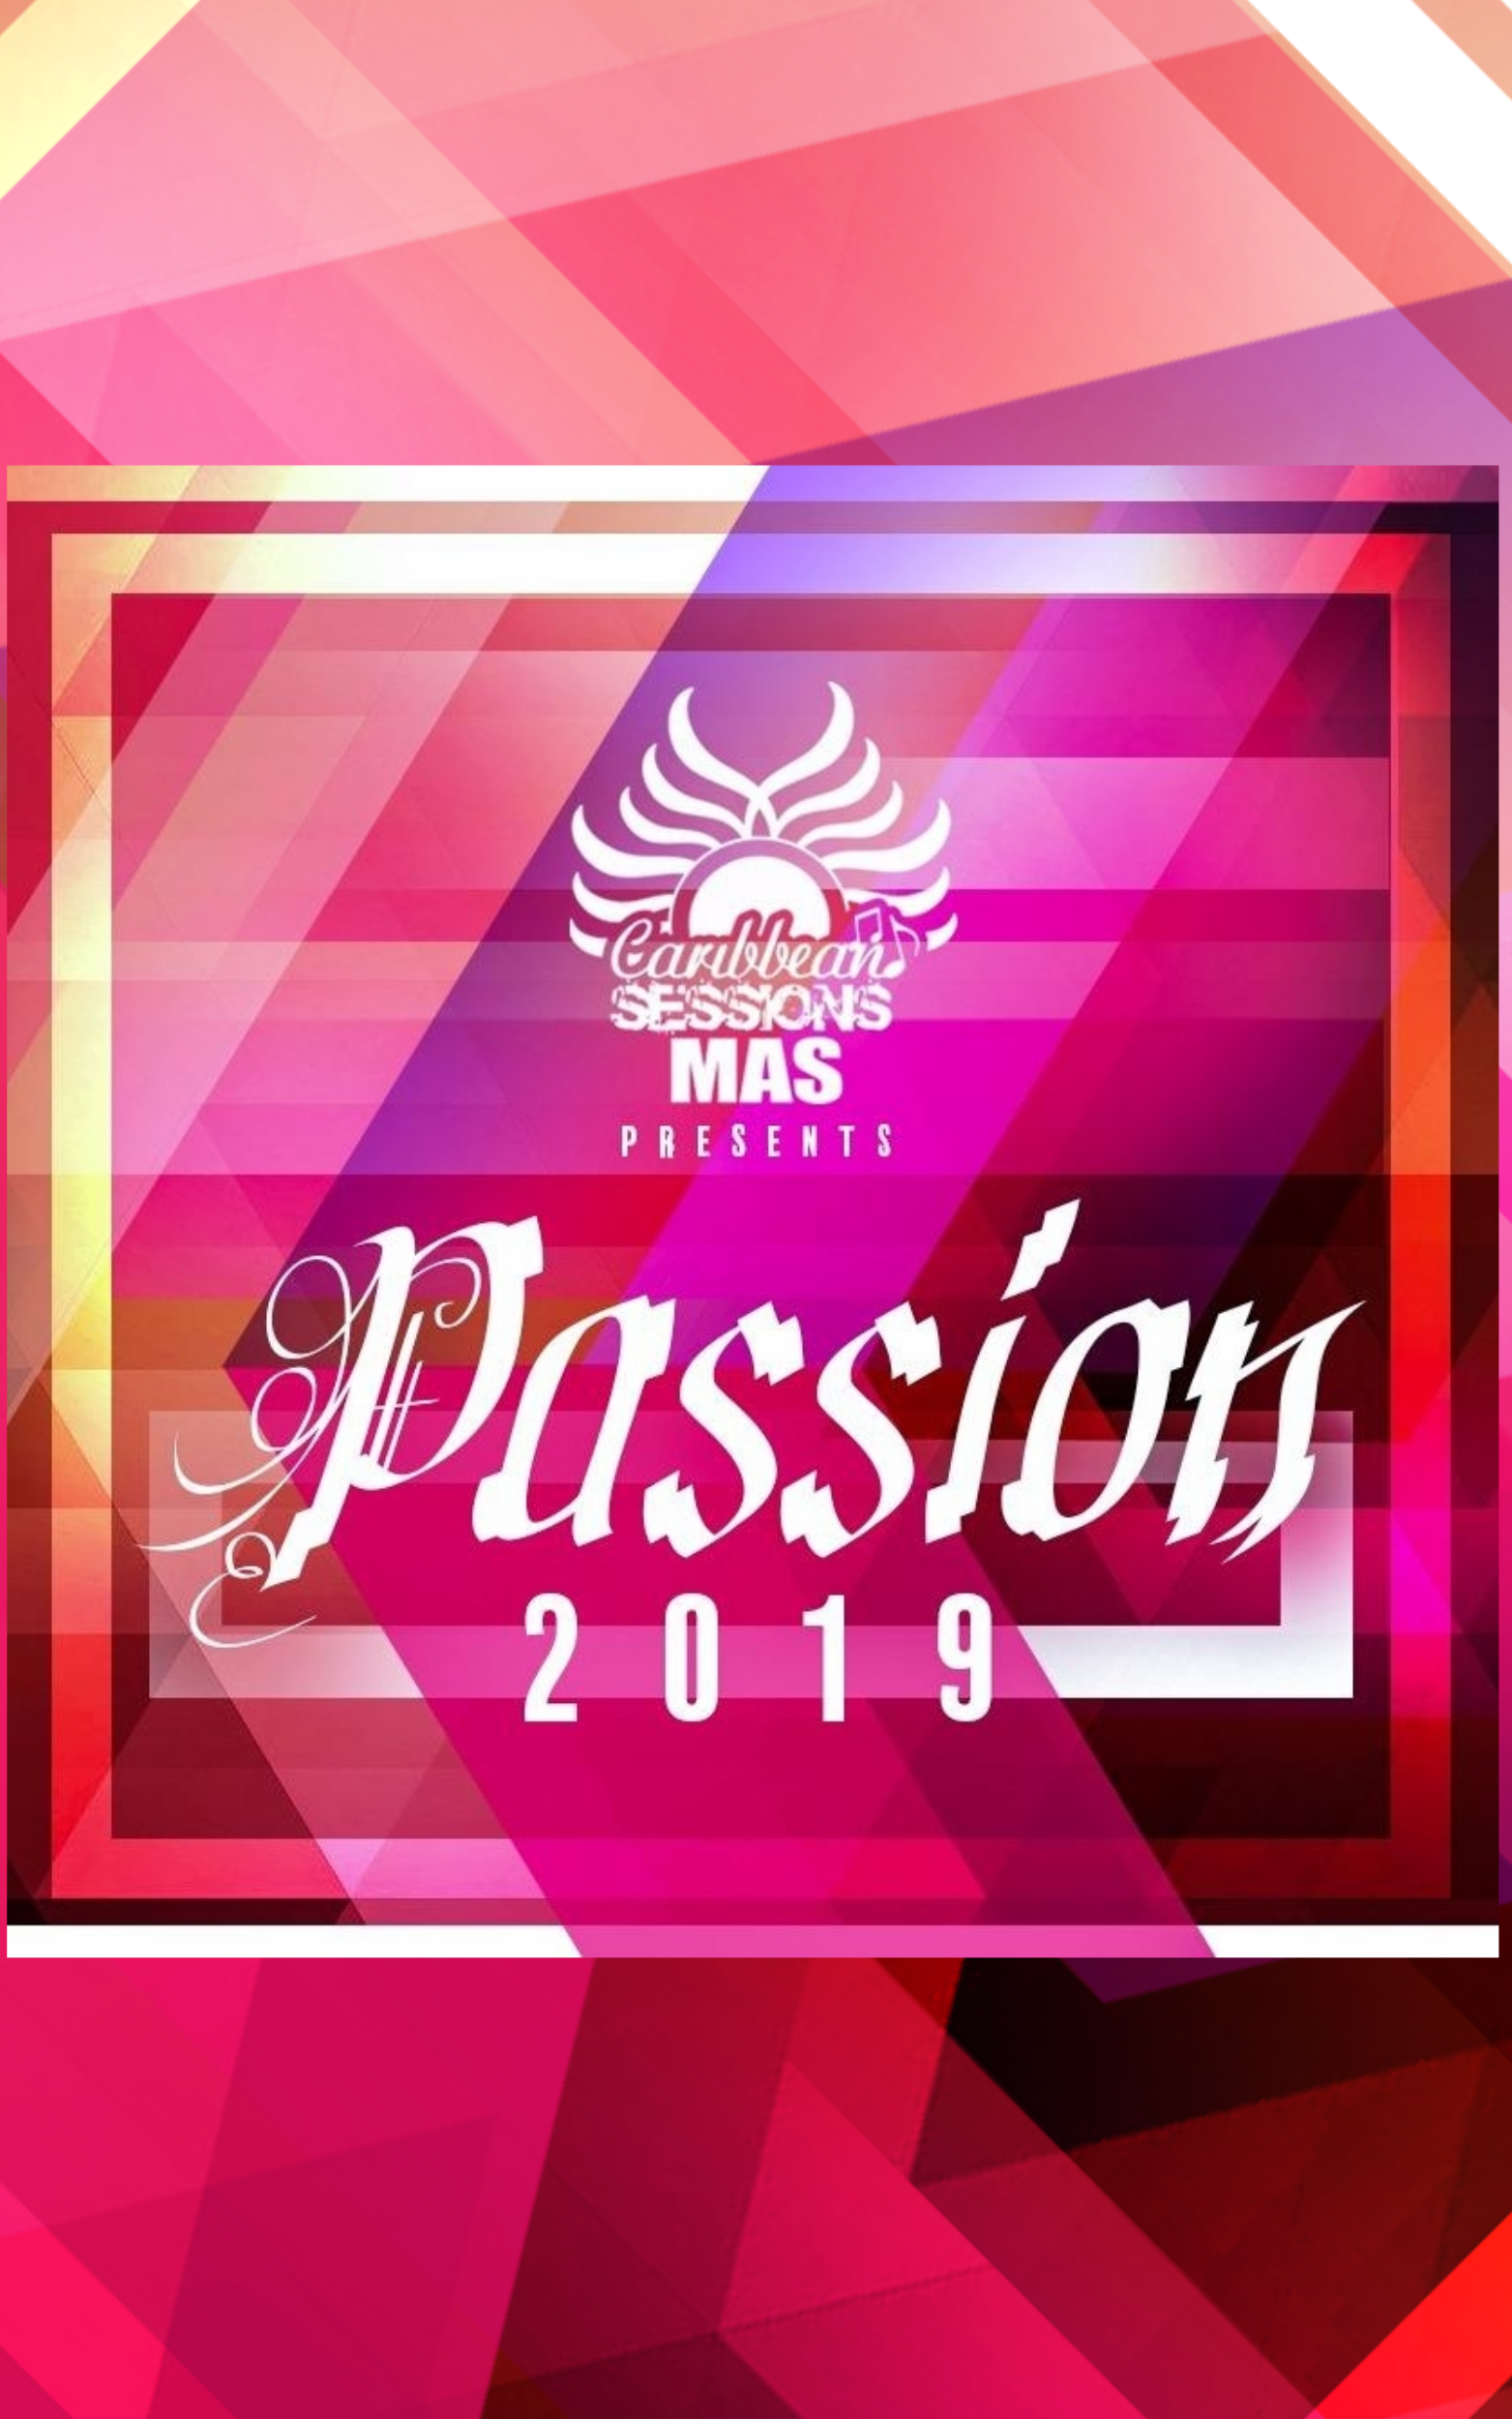 caribbean sessions mas package for notting hill carnival 2019